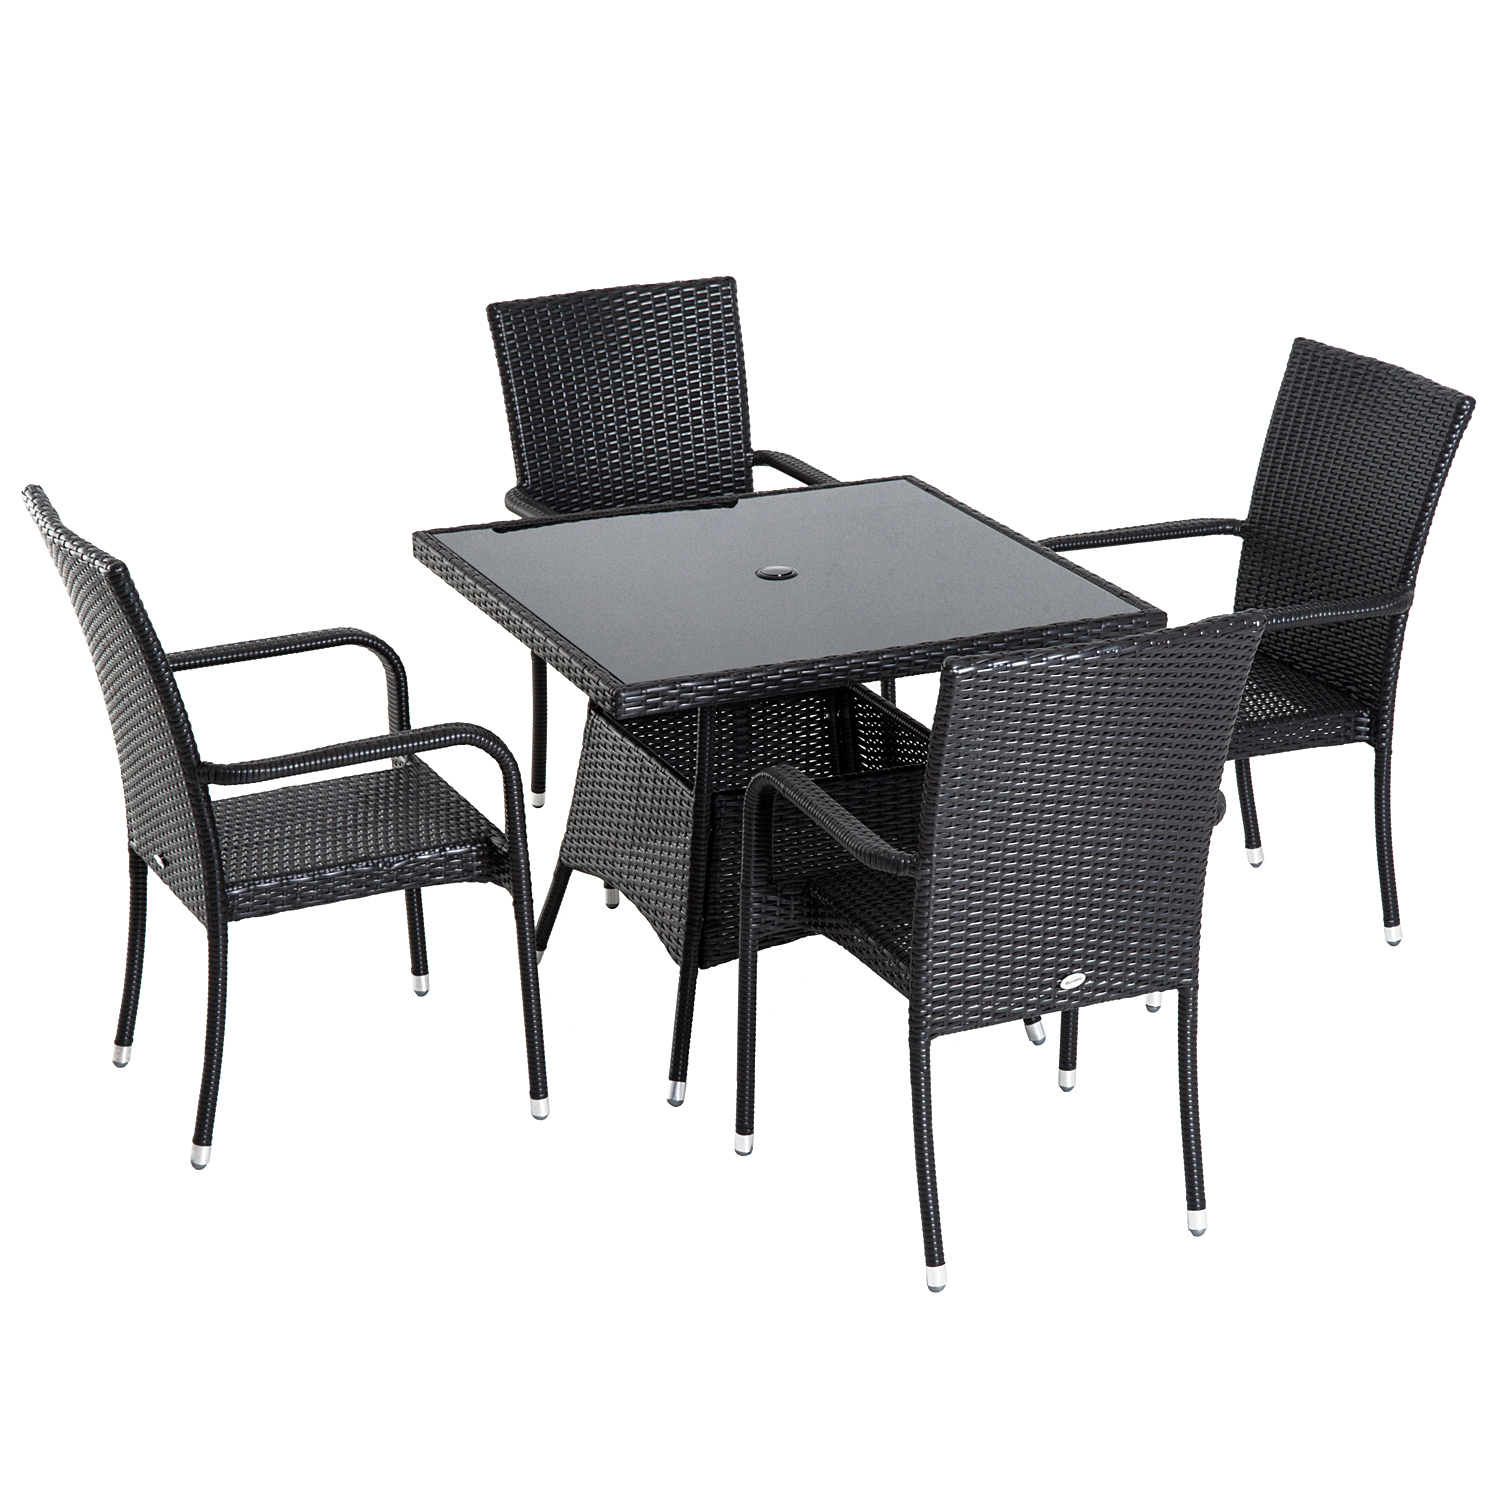 Image of £244.99 Outsunny 5 Pieces Rattan Dining Set, Steel-Brown / 5PC Set Garden Outdoor Wicker Weave Furniture 4 Armrest Chairs + 1 Table Patio Yard Brown Chair Steel 861-017 5056029887554